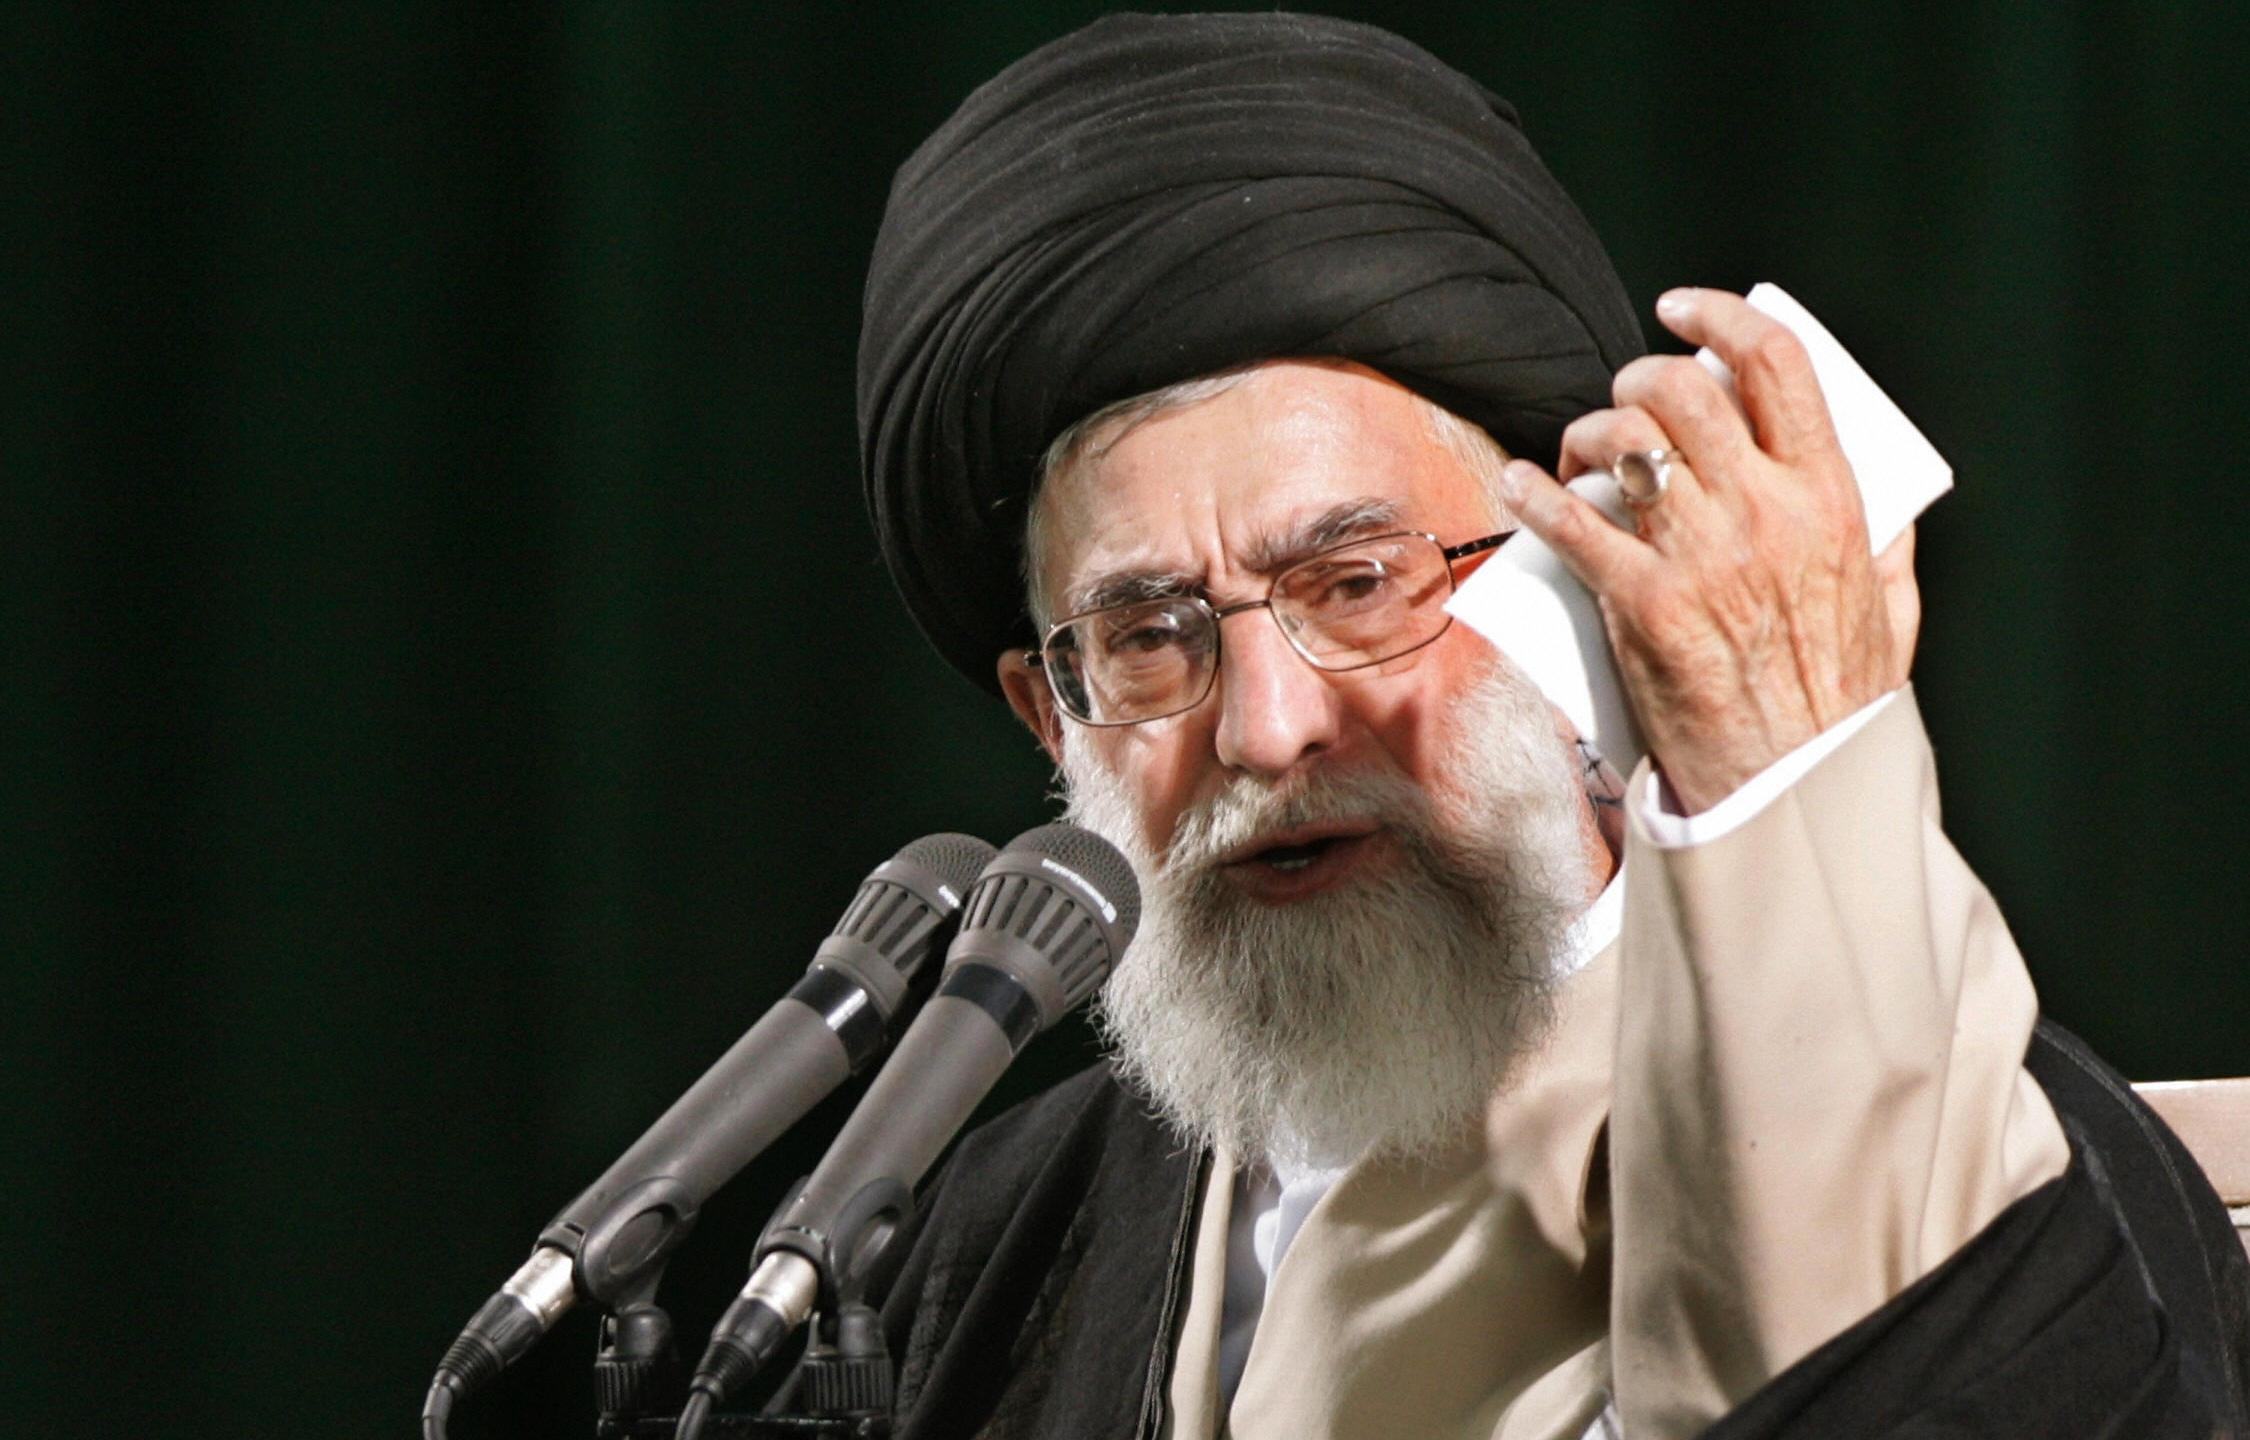 Iran's supreme leader Ayatollah Ali Khamenei delivers a speech during the 18th anniversary of the death of Iran's revolutionary founder Ayatollah Ruhollah Khomeini at the latter's mausoleum in Tehran, 04 June 2007. (Credit: ATTA KENARE/AFP/Getty Images)